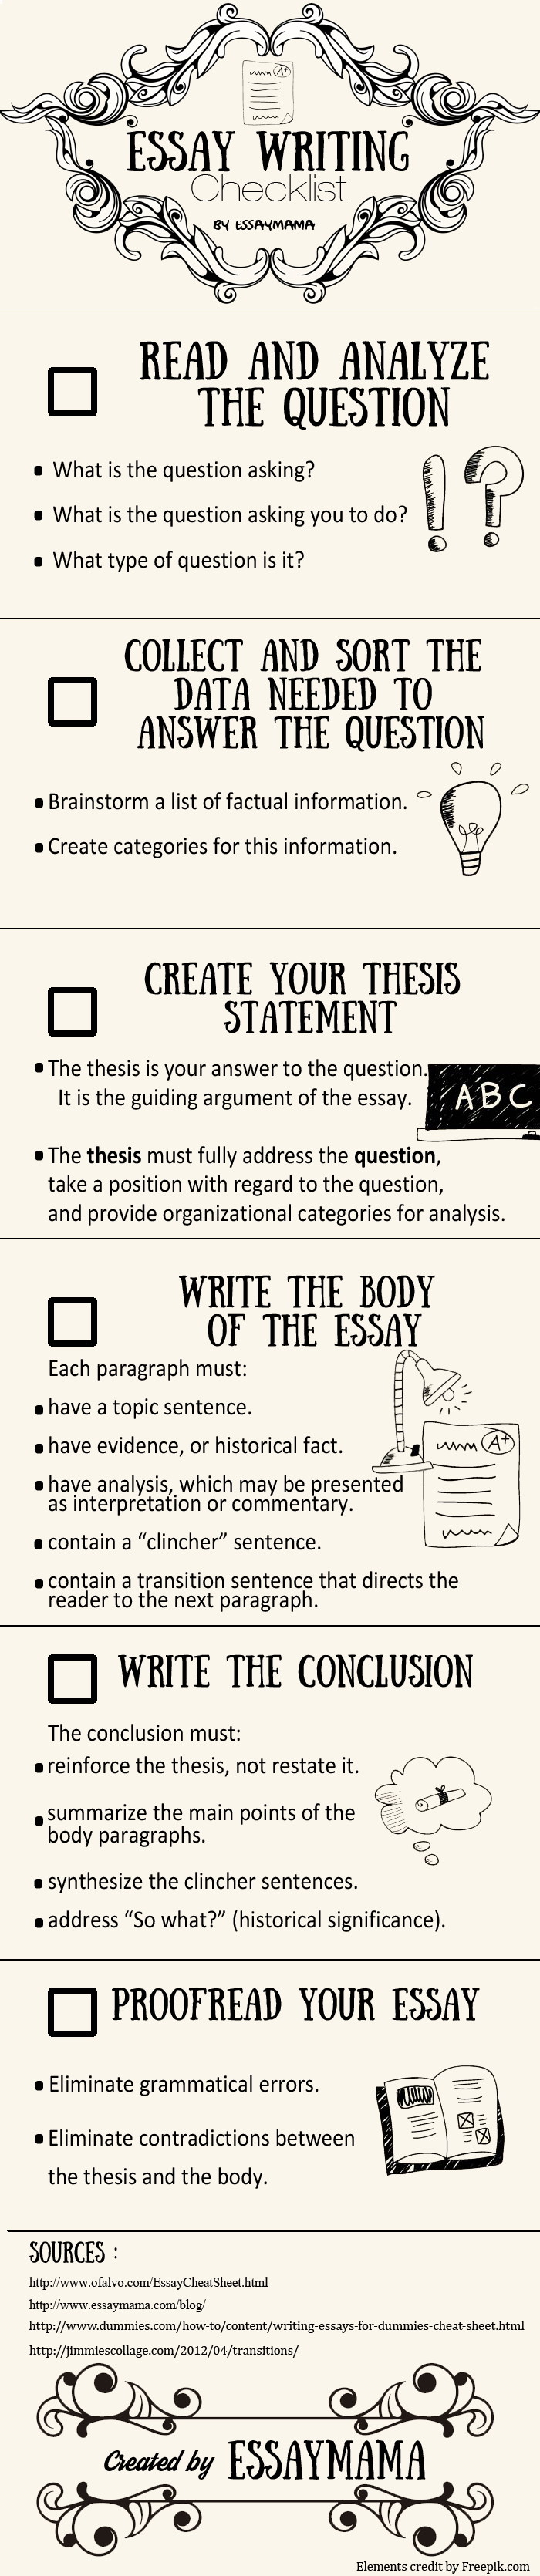 Essay Writing Checklist For Brainy Students Writing Checklist Essay Writing Essay